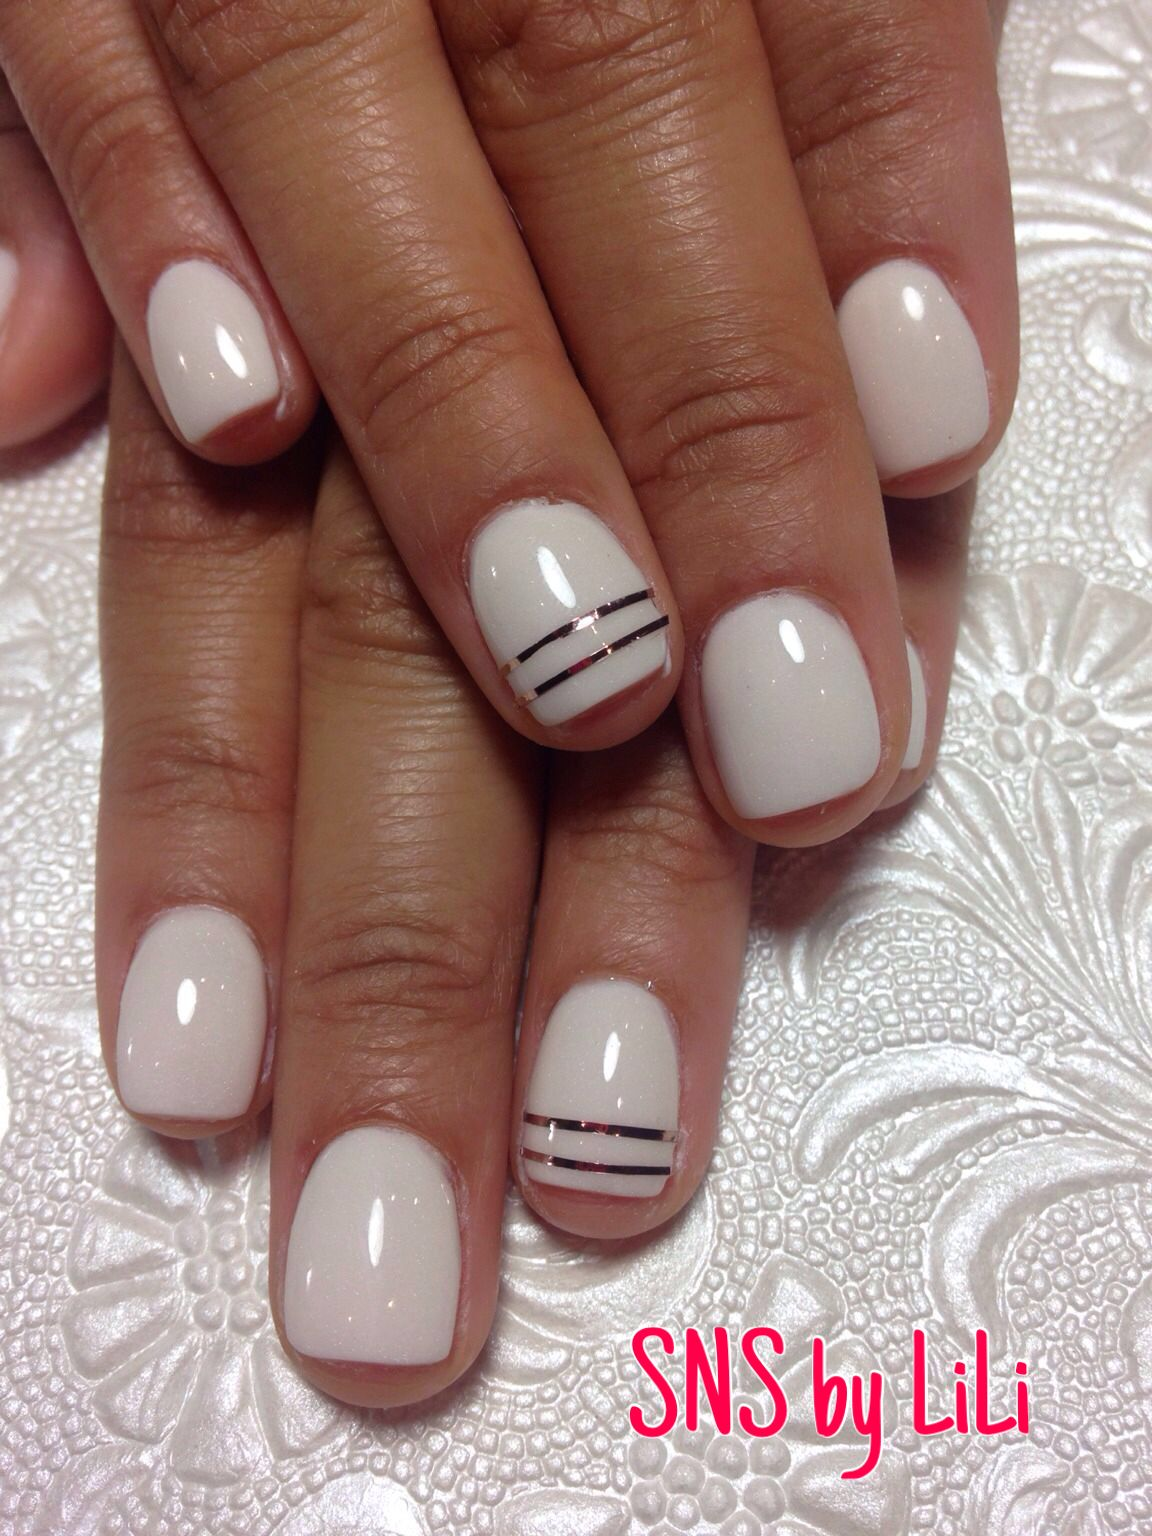 Sns Nails With Design By Lili Powder Nails Sns Nails Colors Sns Nails Designs